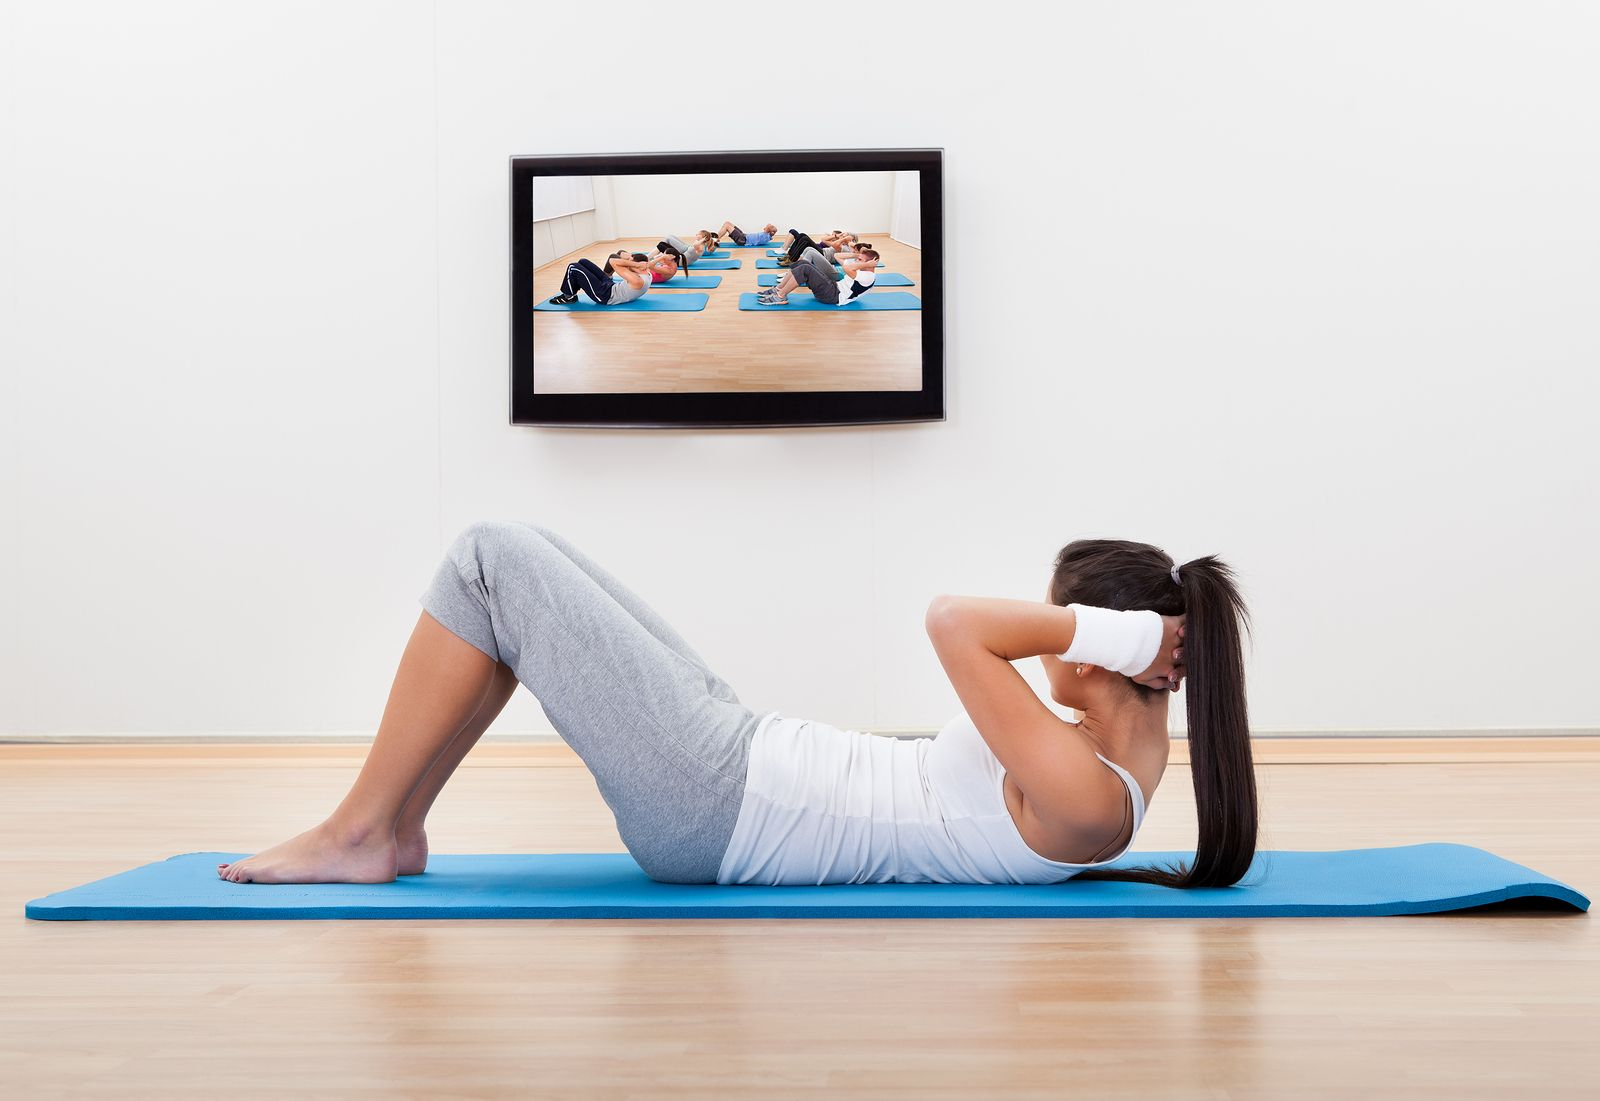 Athletic Barefoot Young Woman Working Out At Home Lying On A Mat Doing Liftups And Head Raises While Watchin Umbilical Hernia Hernia Exercises Abdominal Hernia